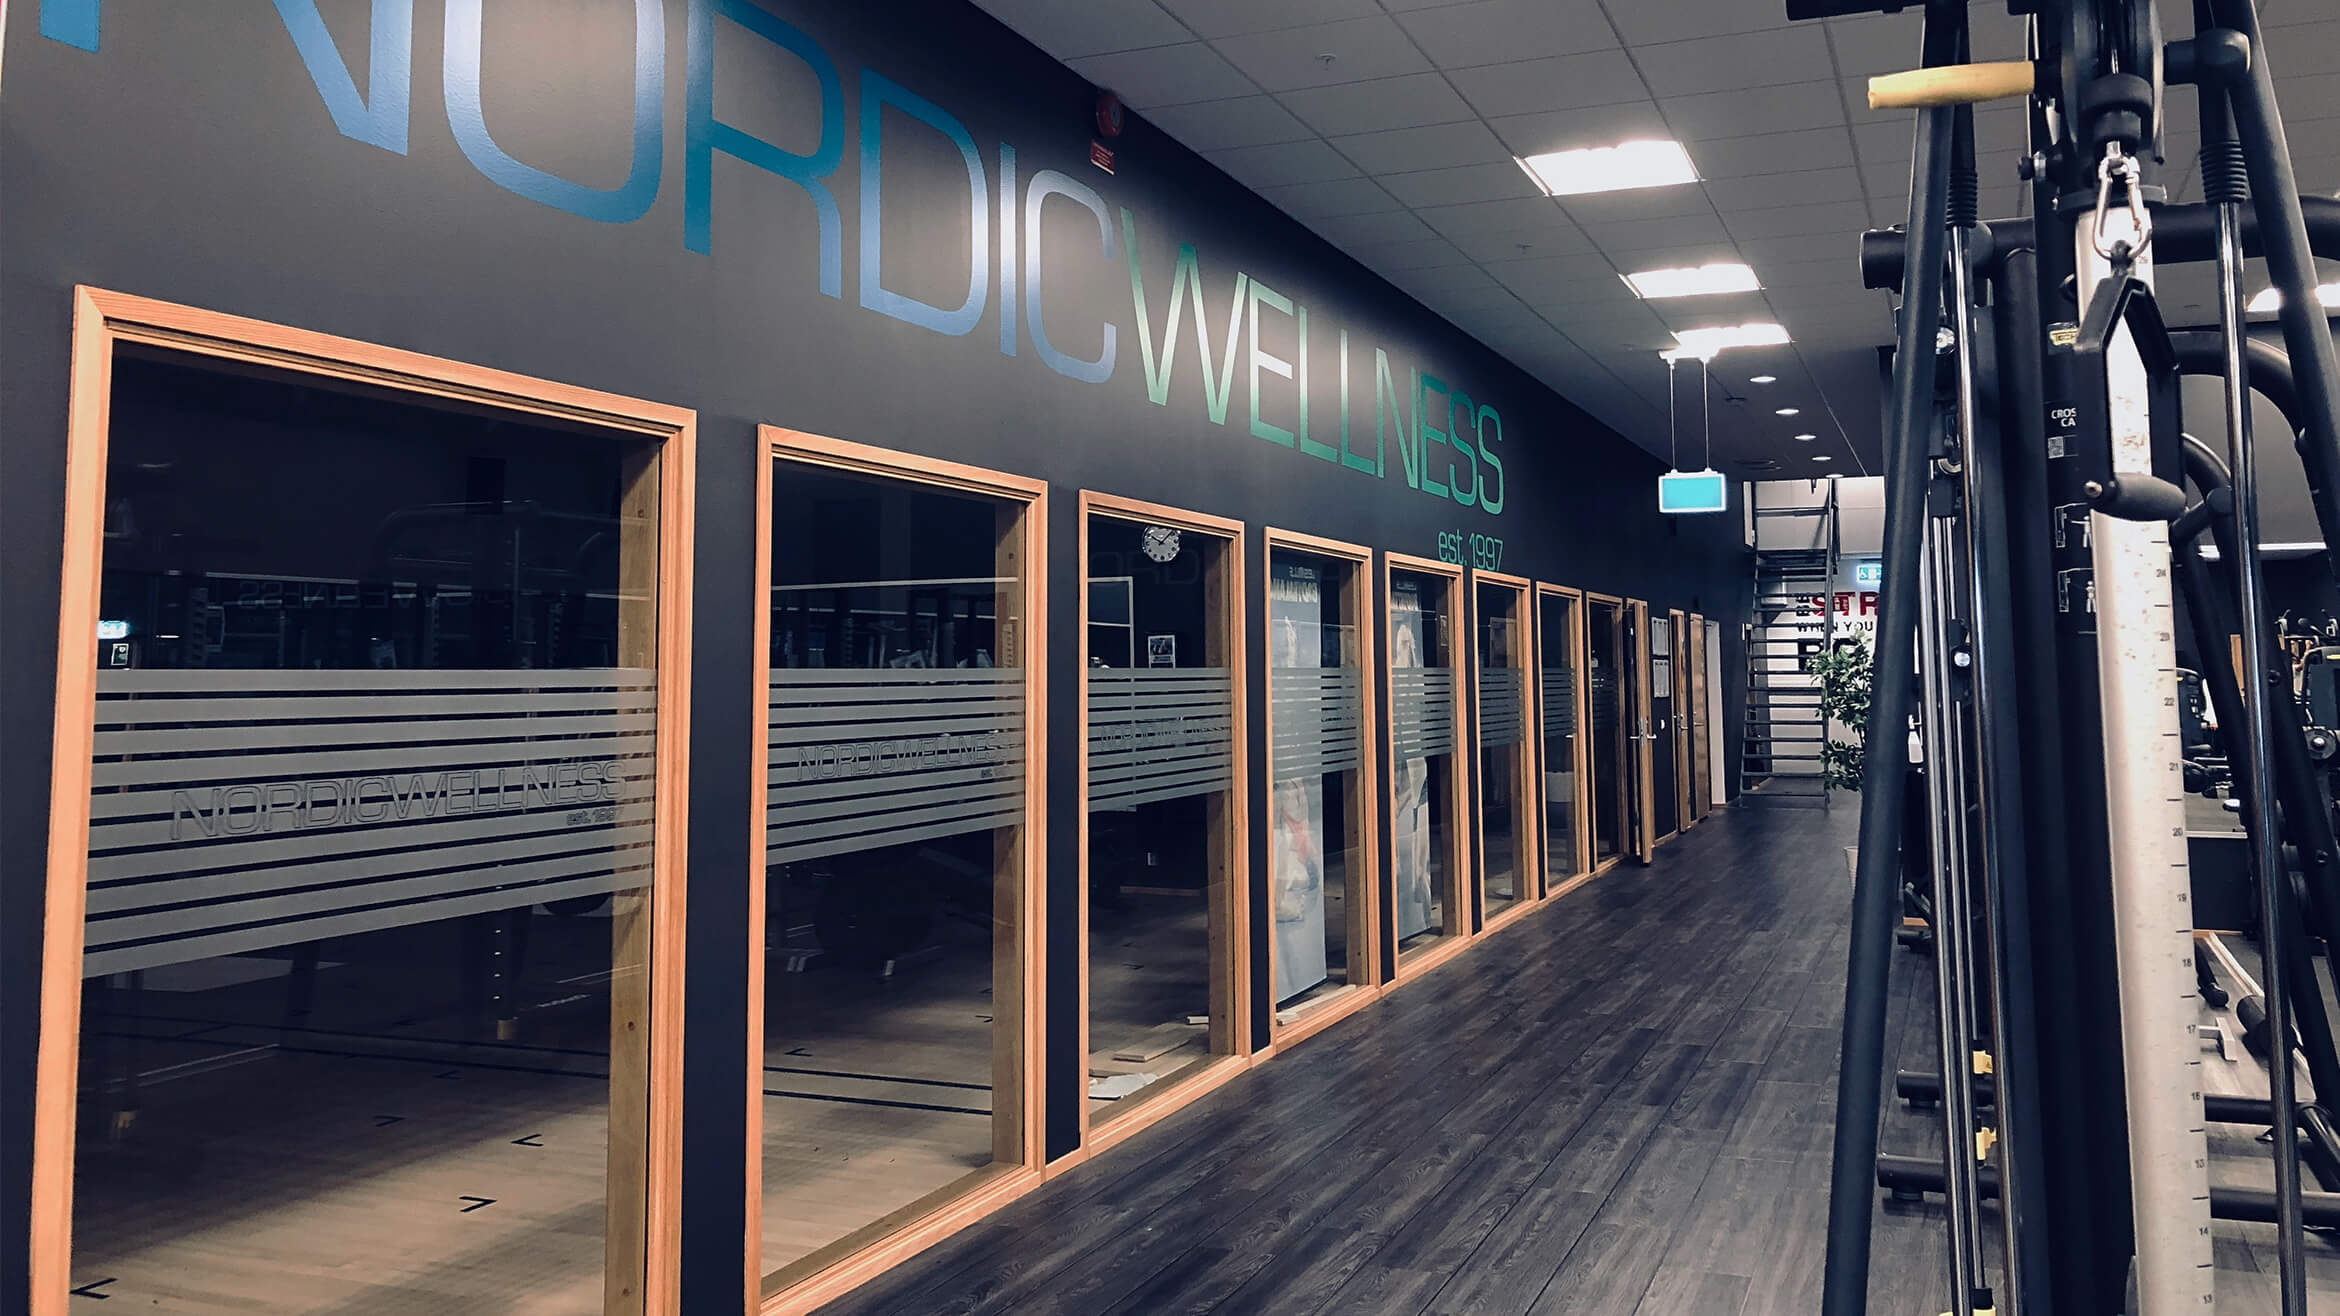 womens wellness uppsala priser